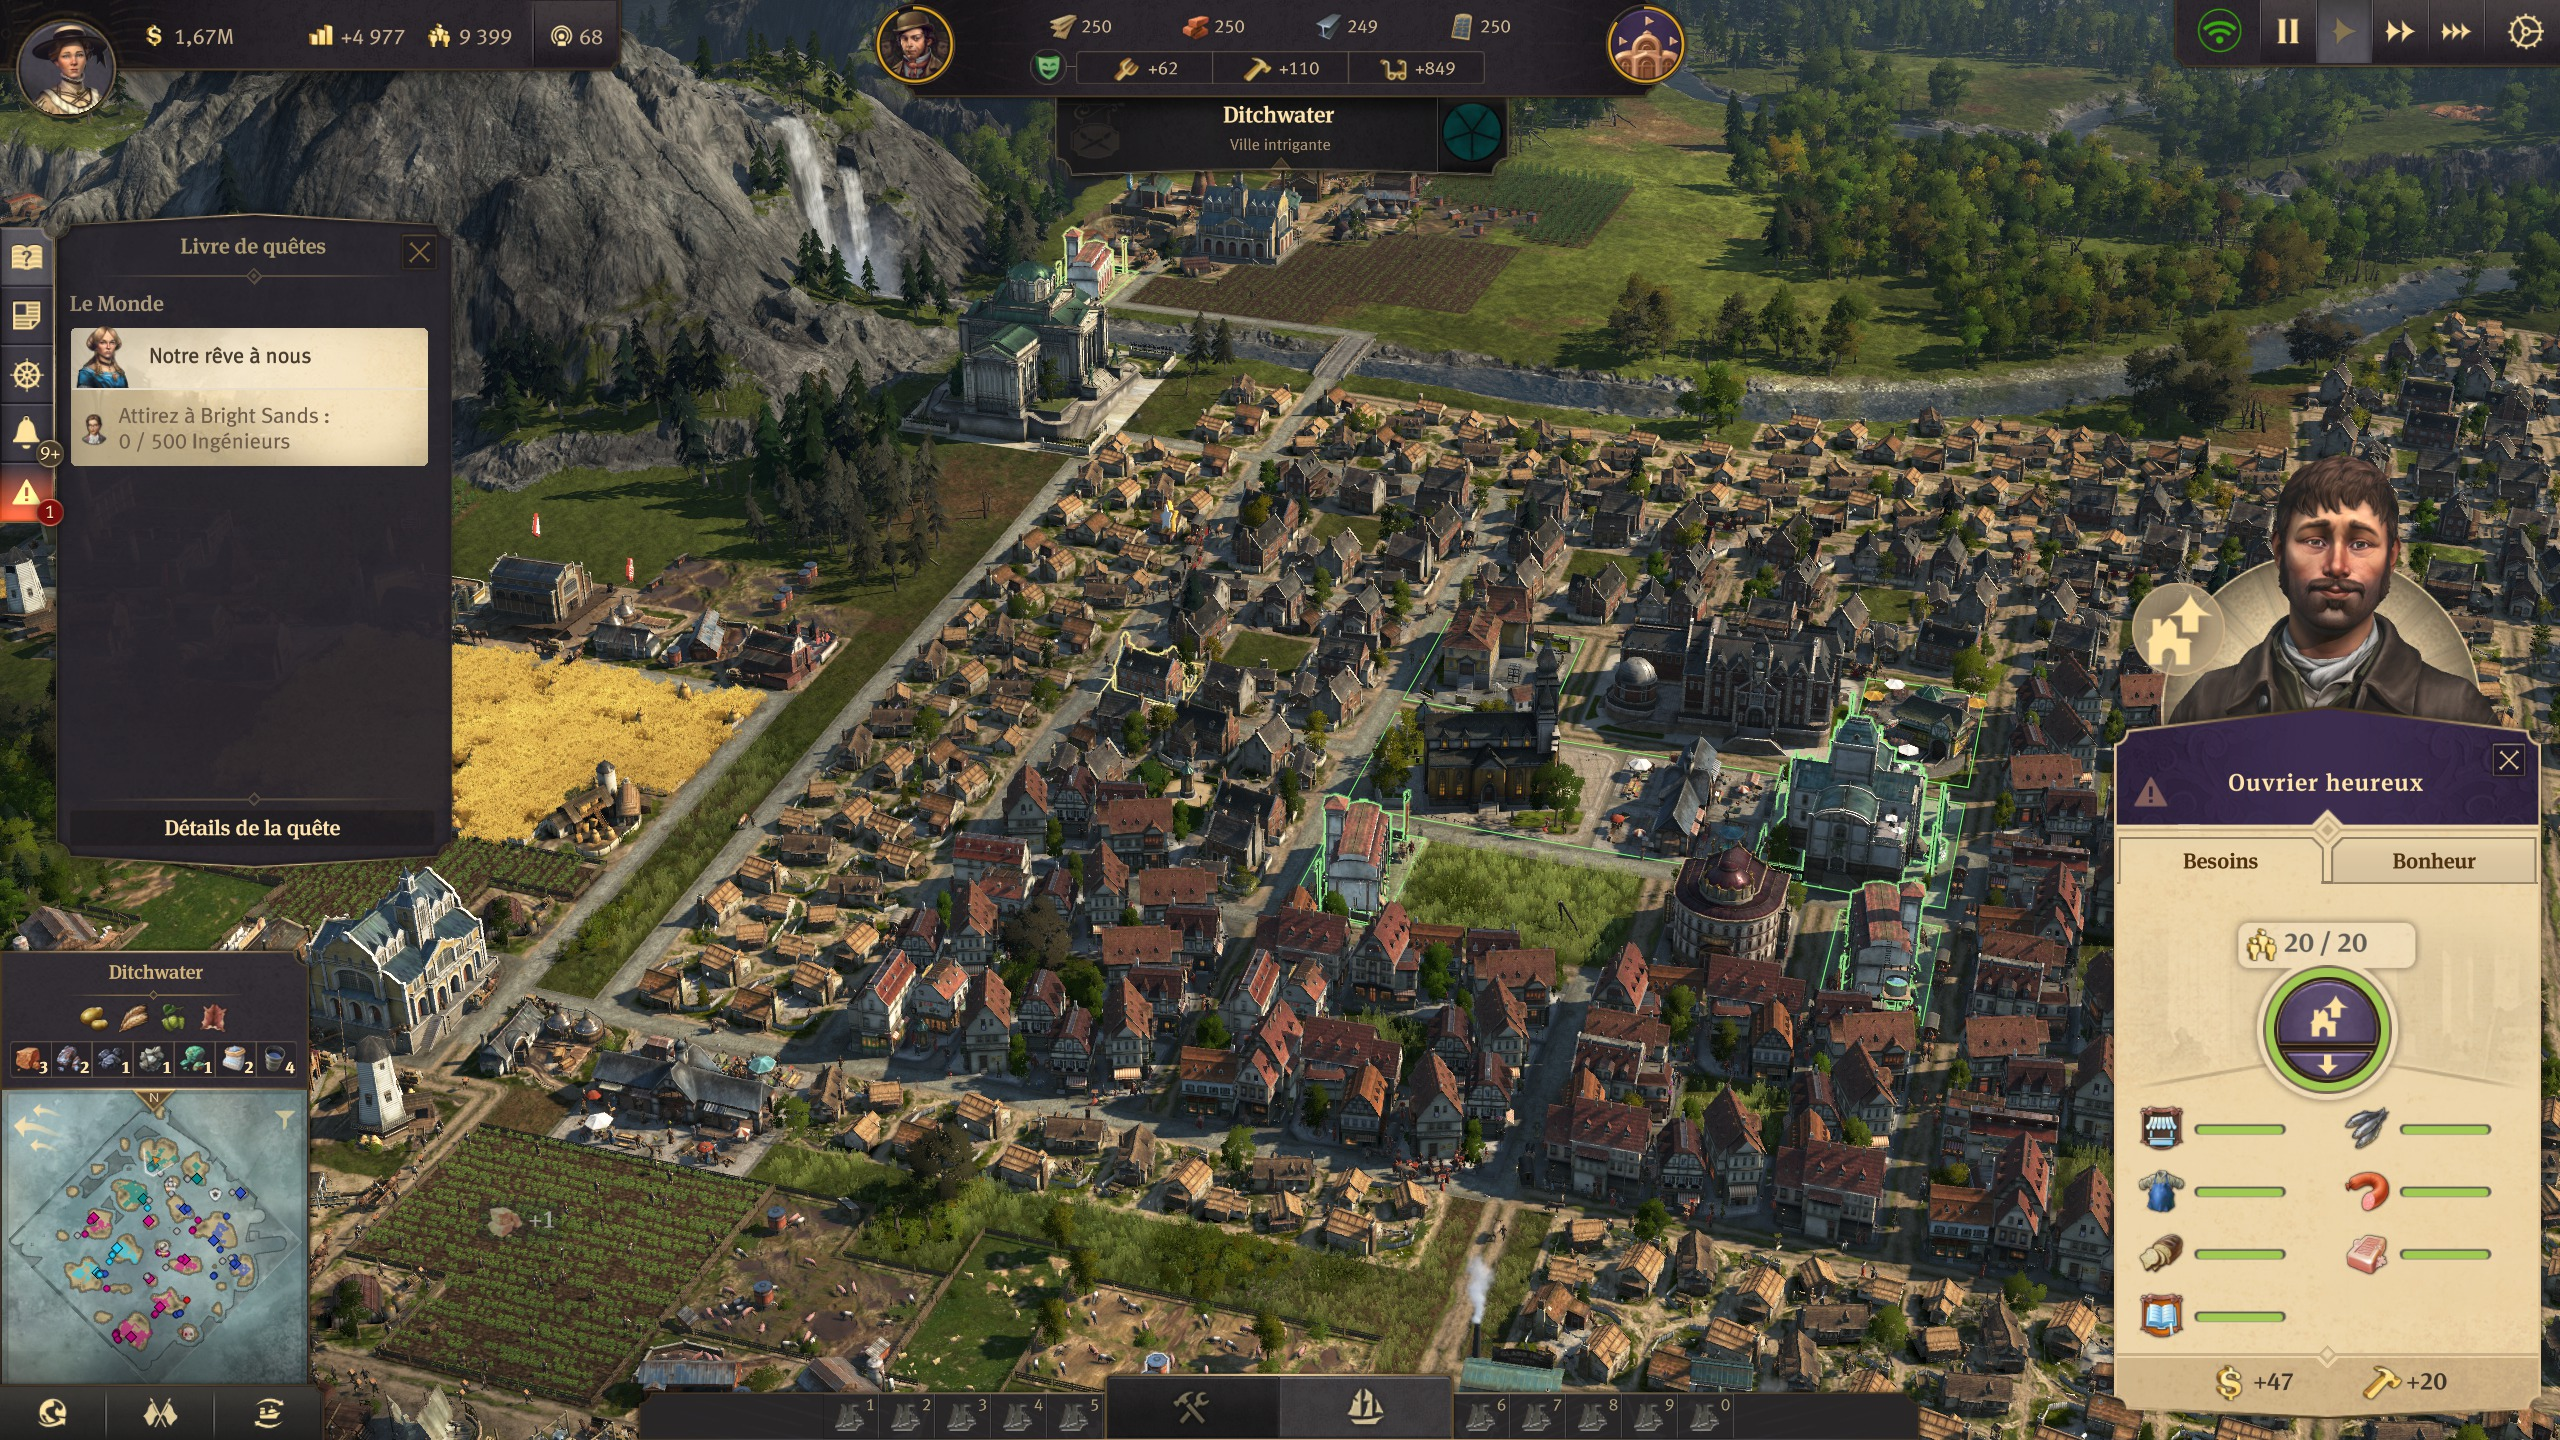 Anno 1800 : Population - Ouvrier